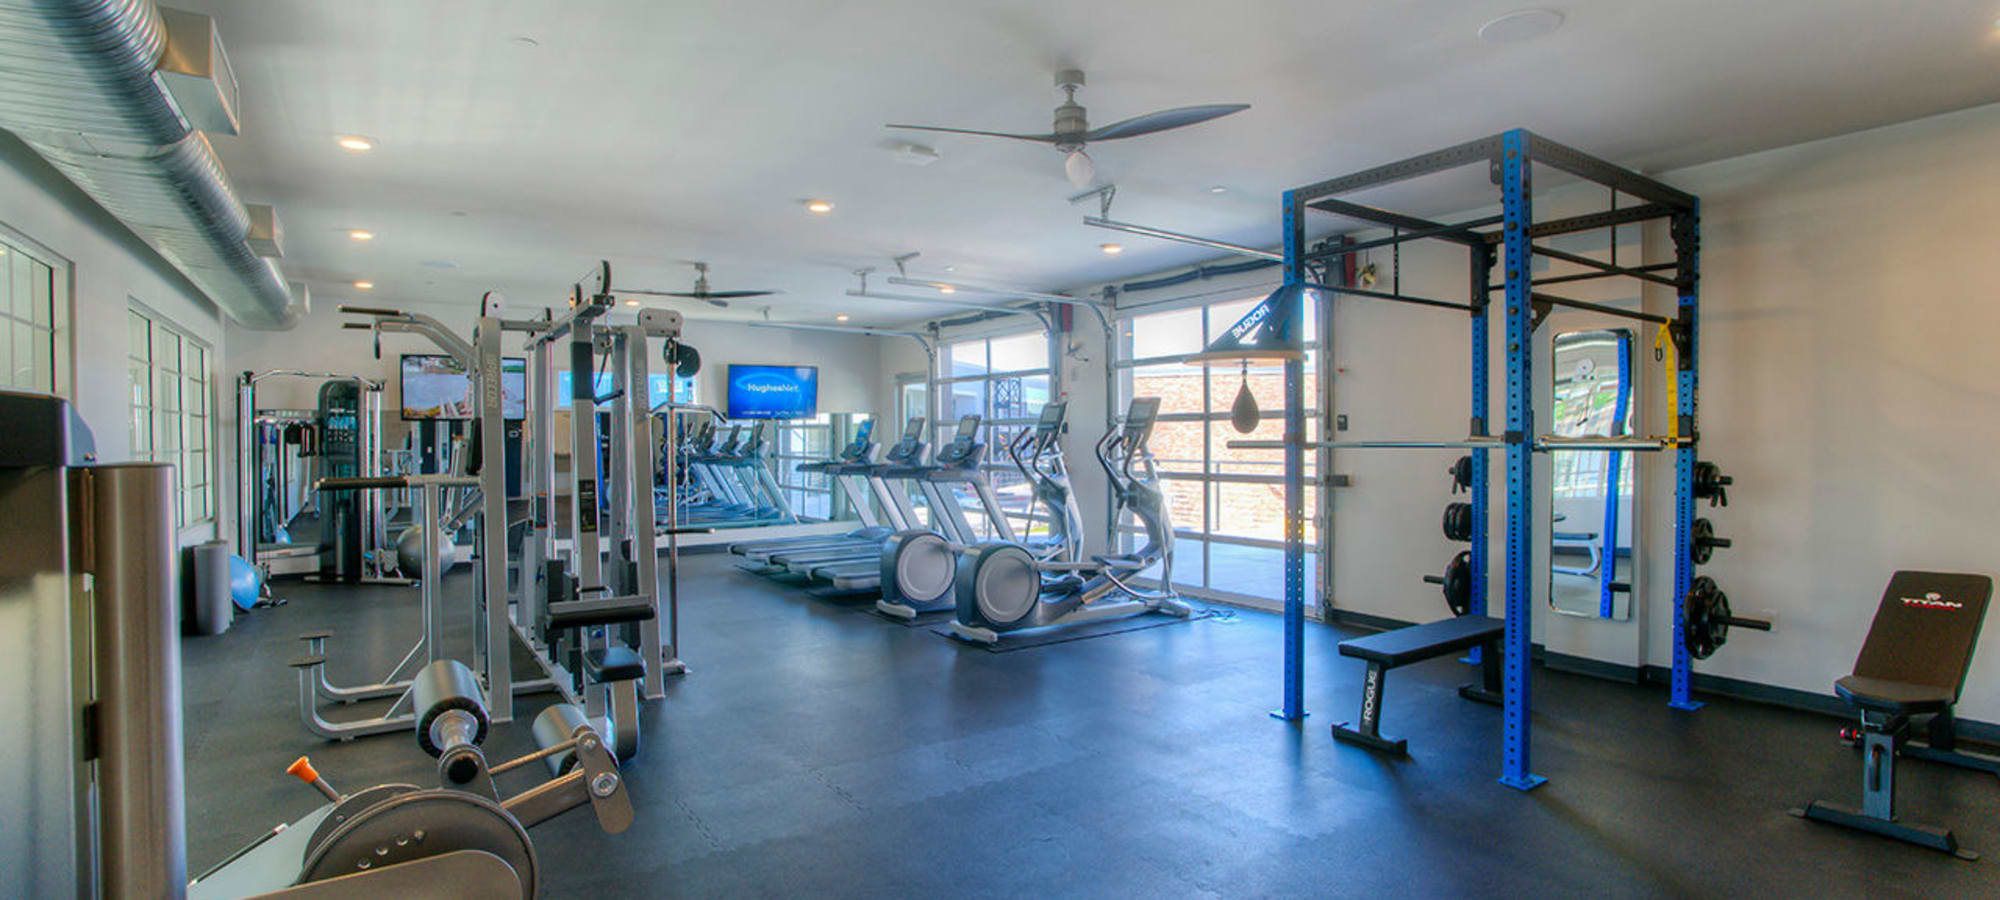 Fitness center at District Lofts in Gilbert, Arizona